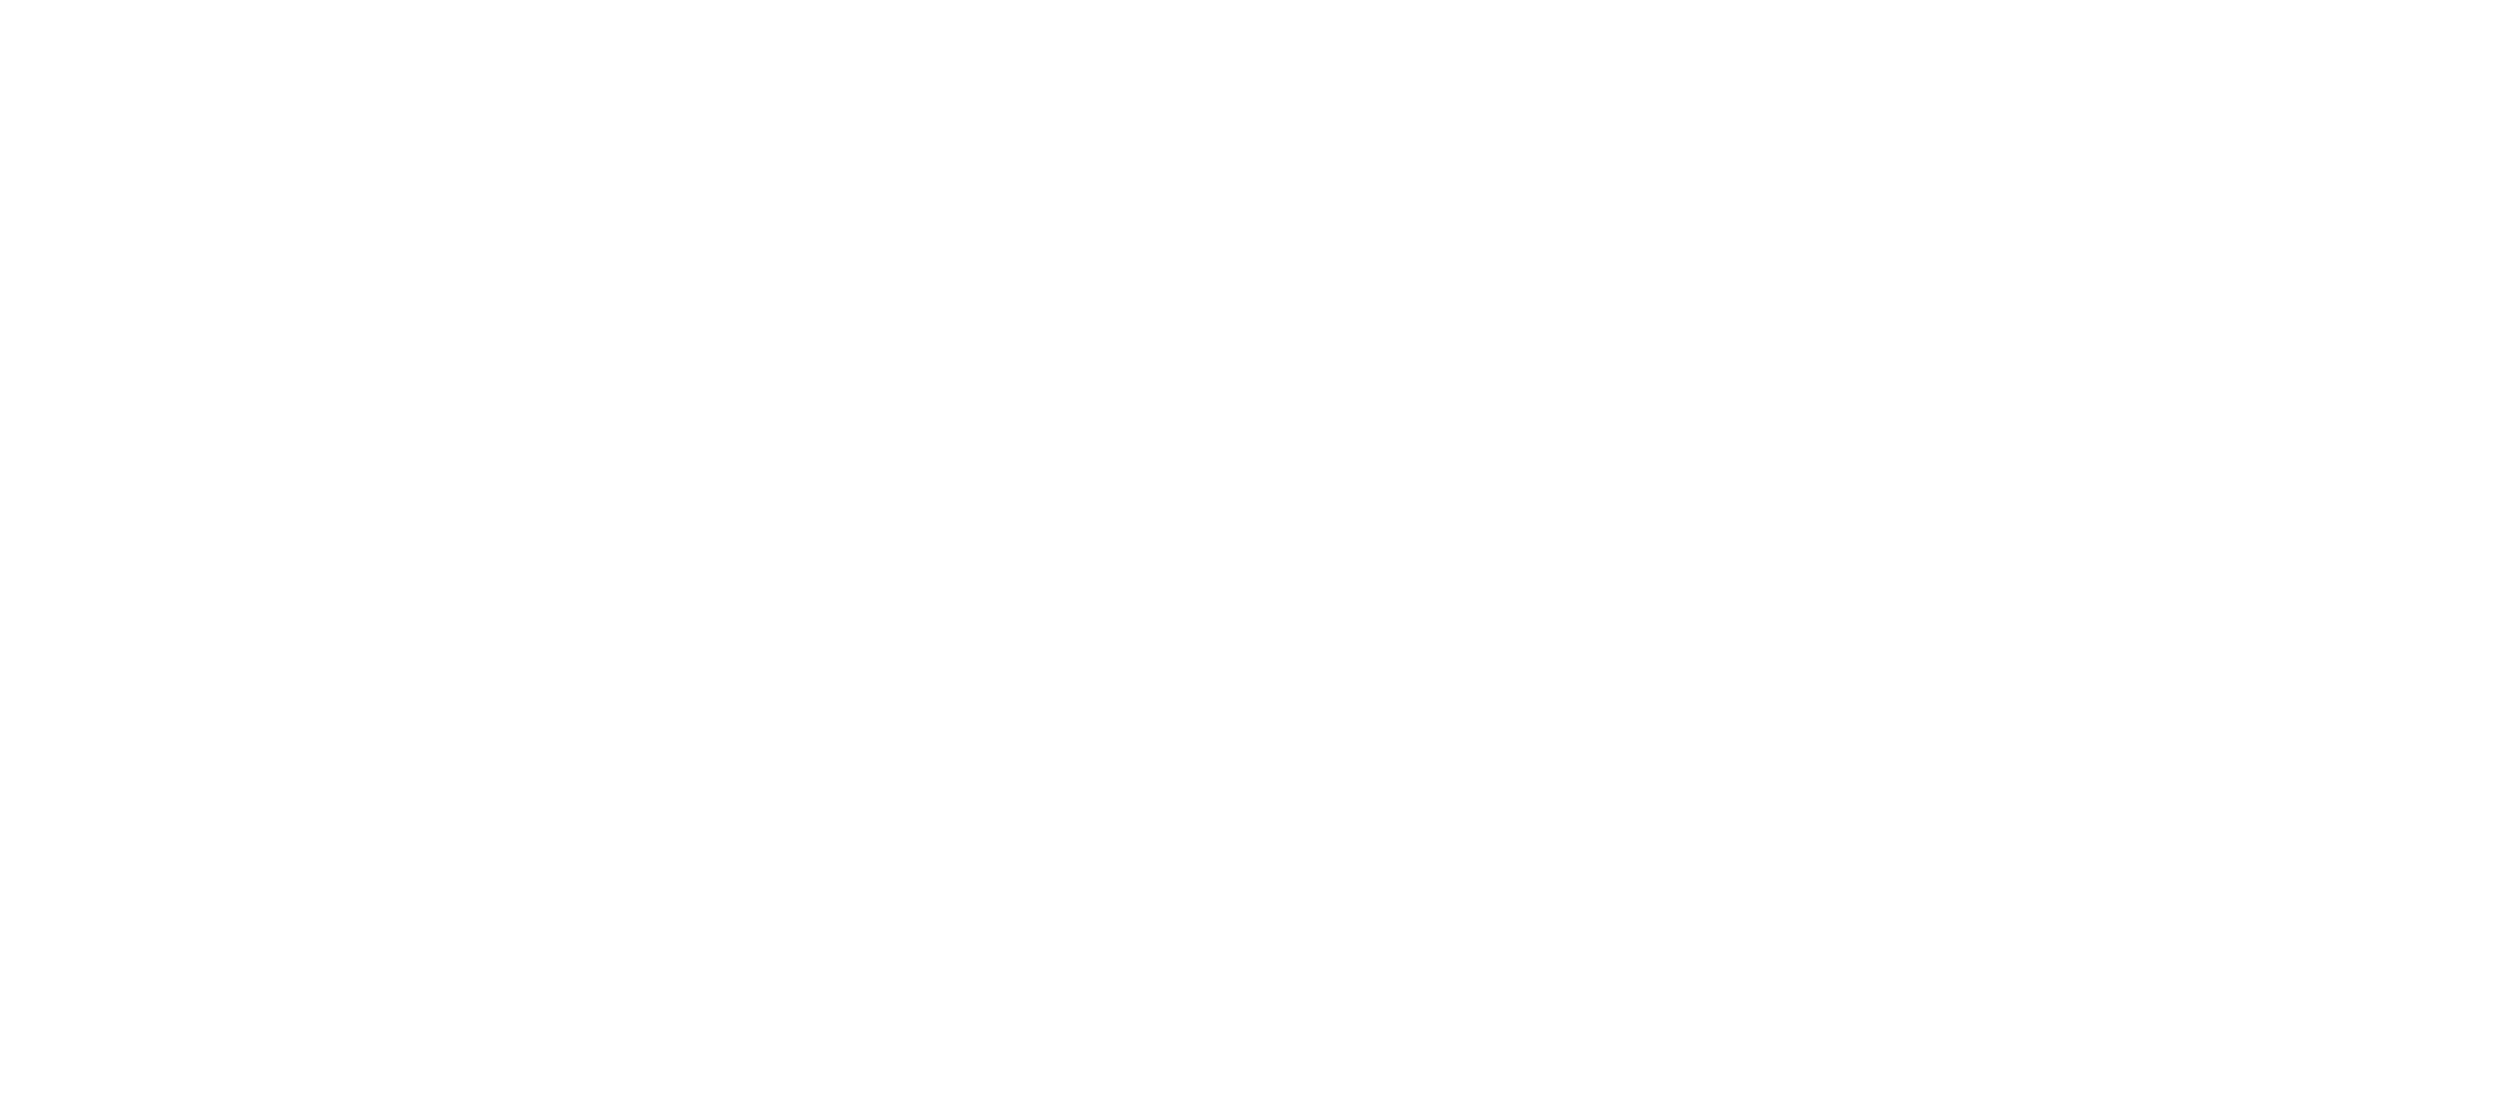 Ethel's Wine Market